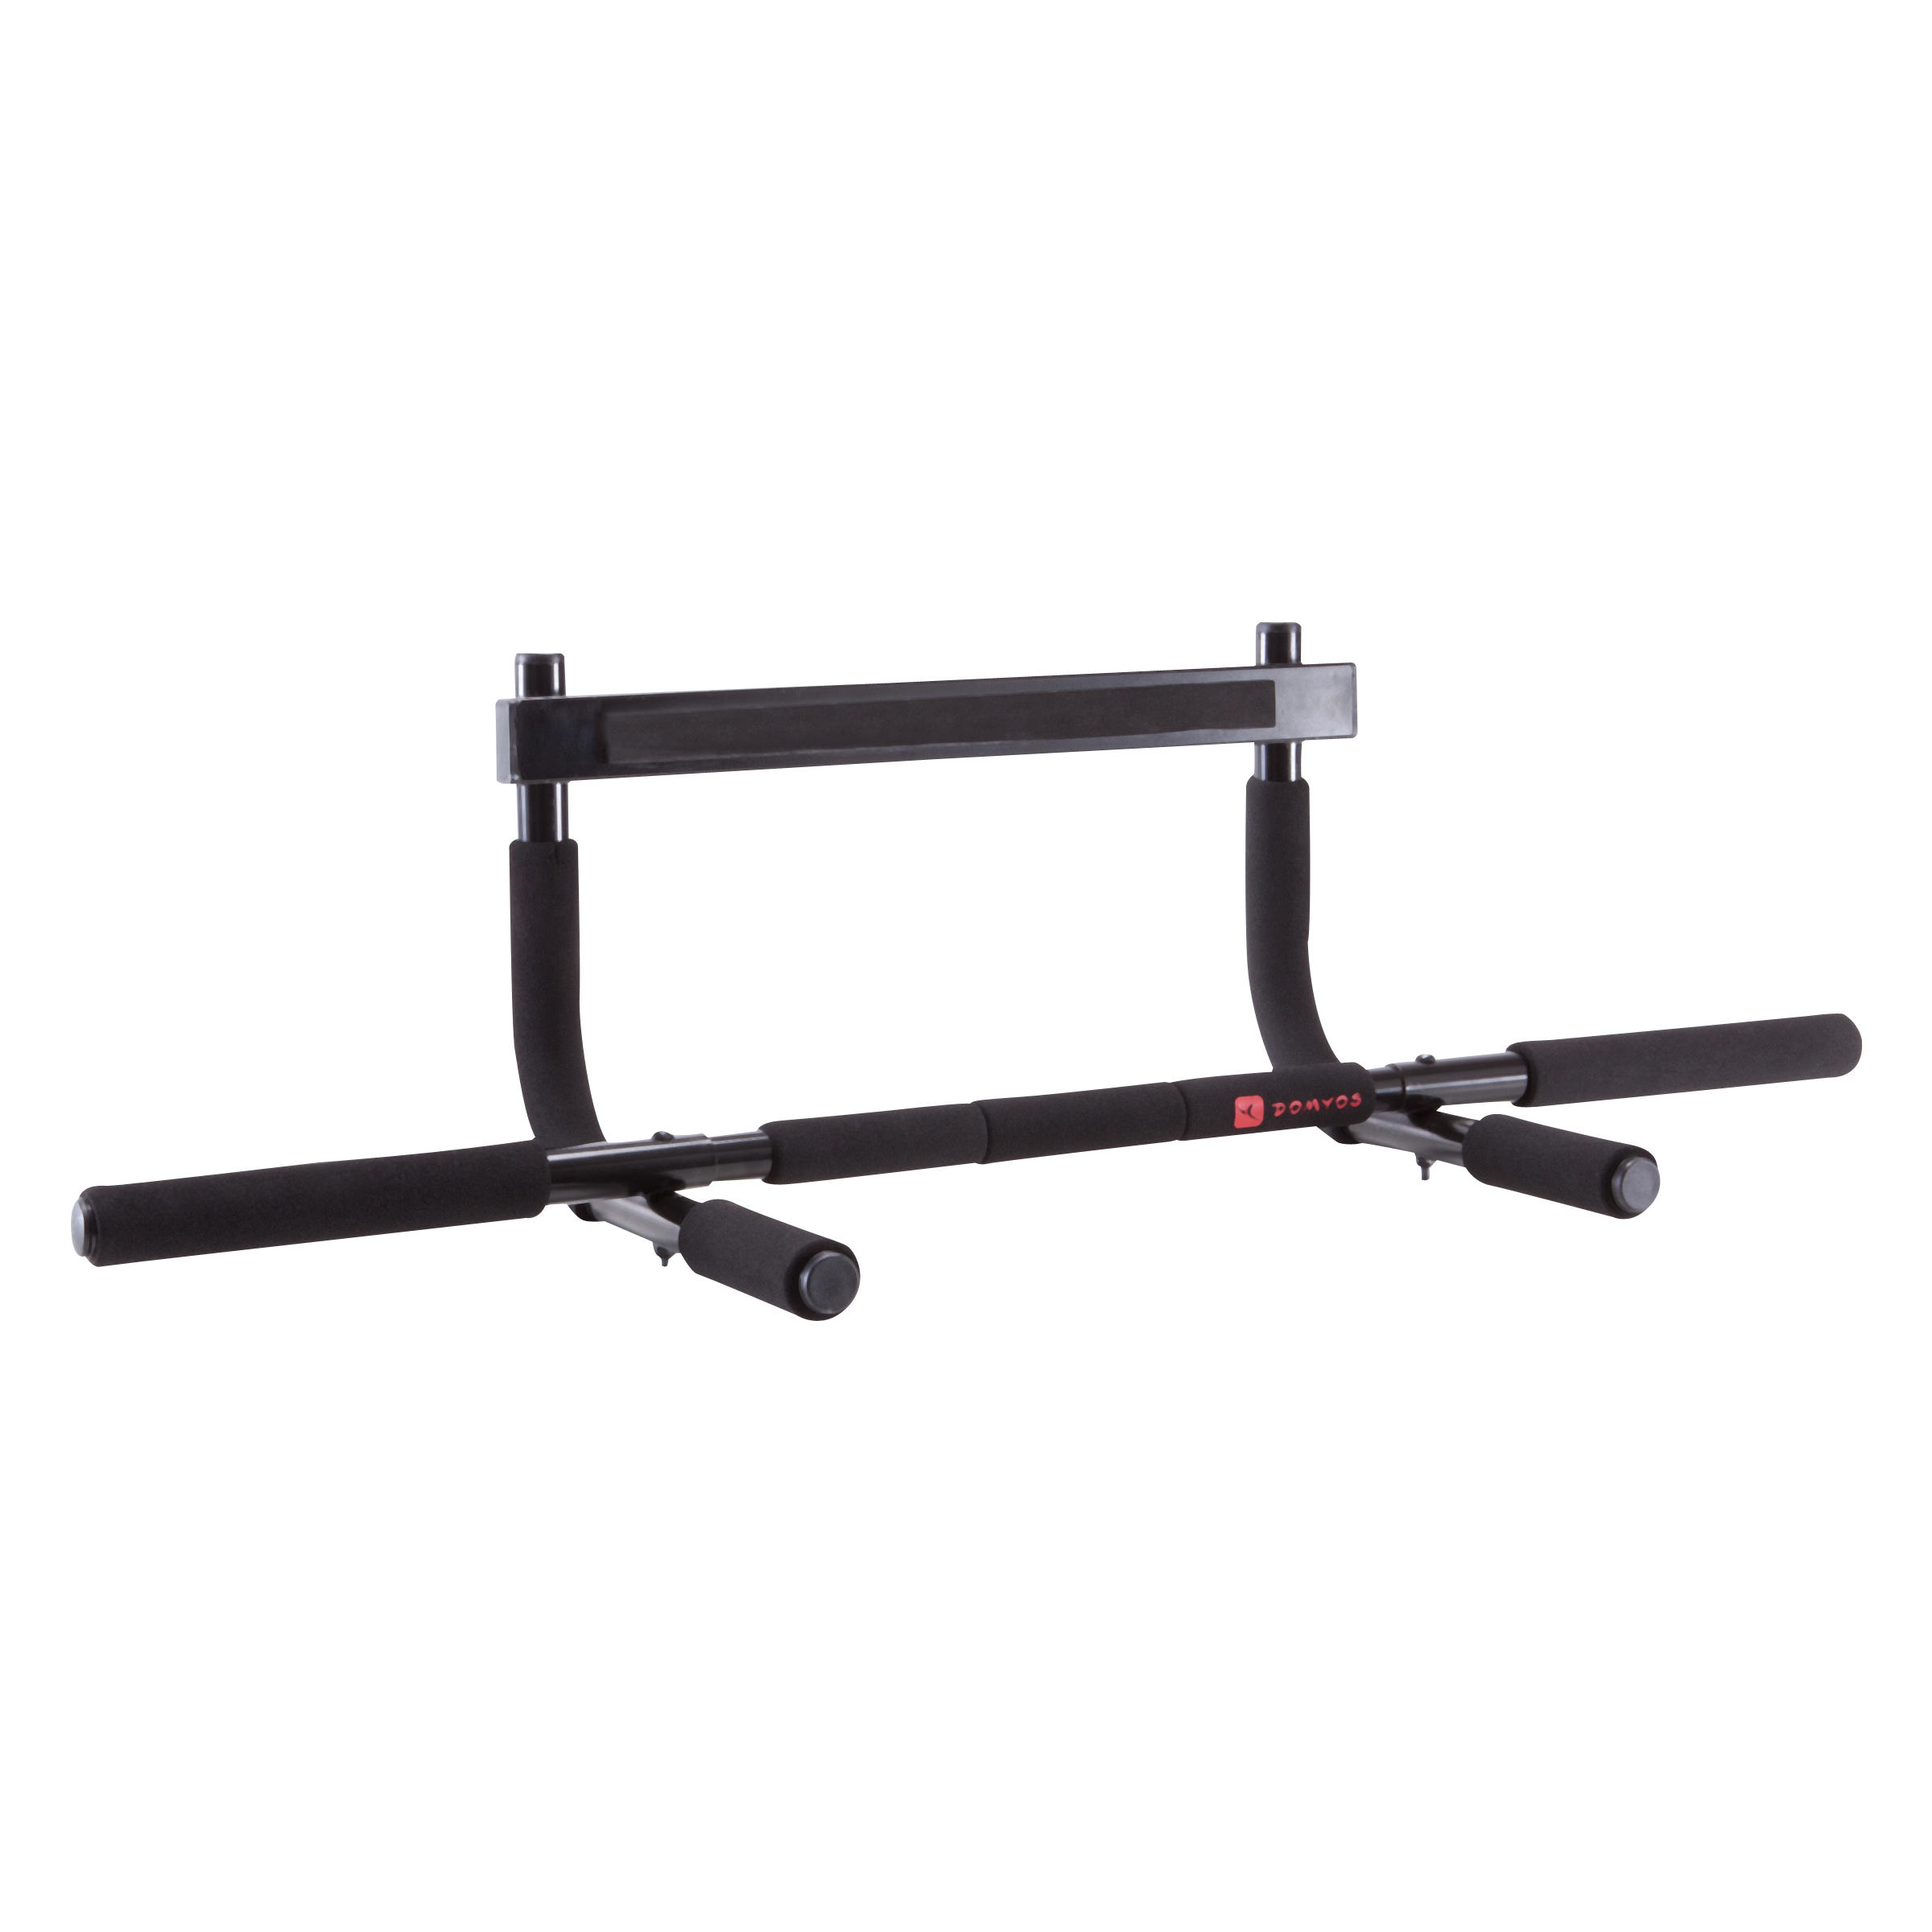 500 Pull-Up Weight Training Bar